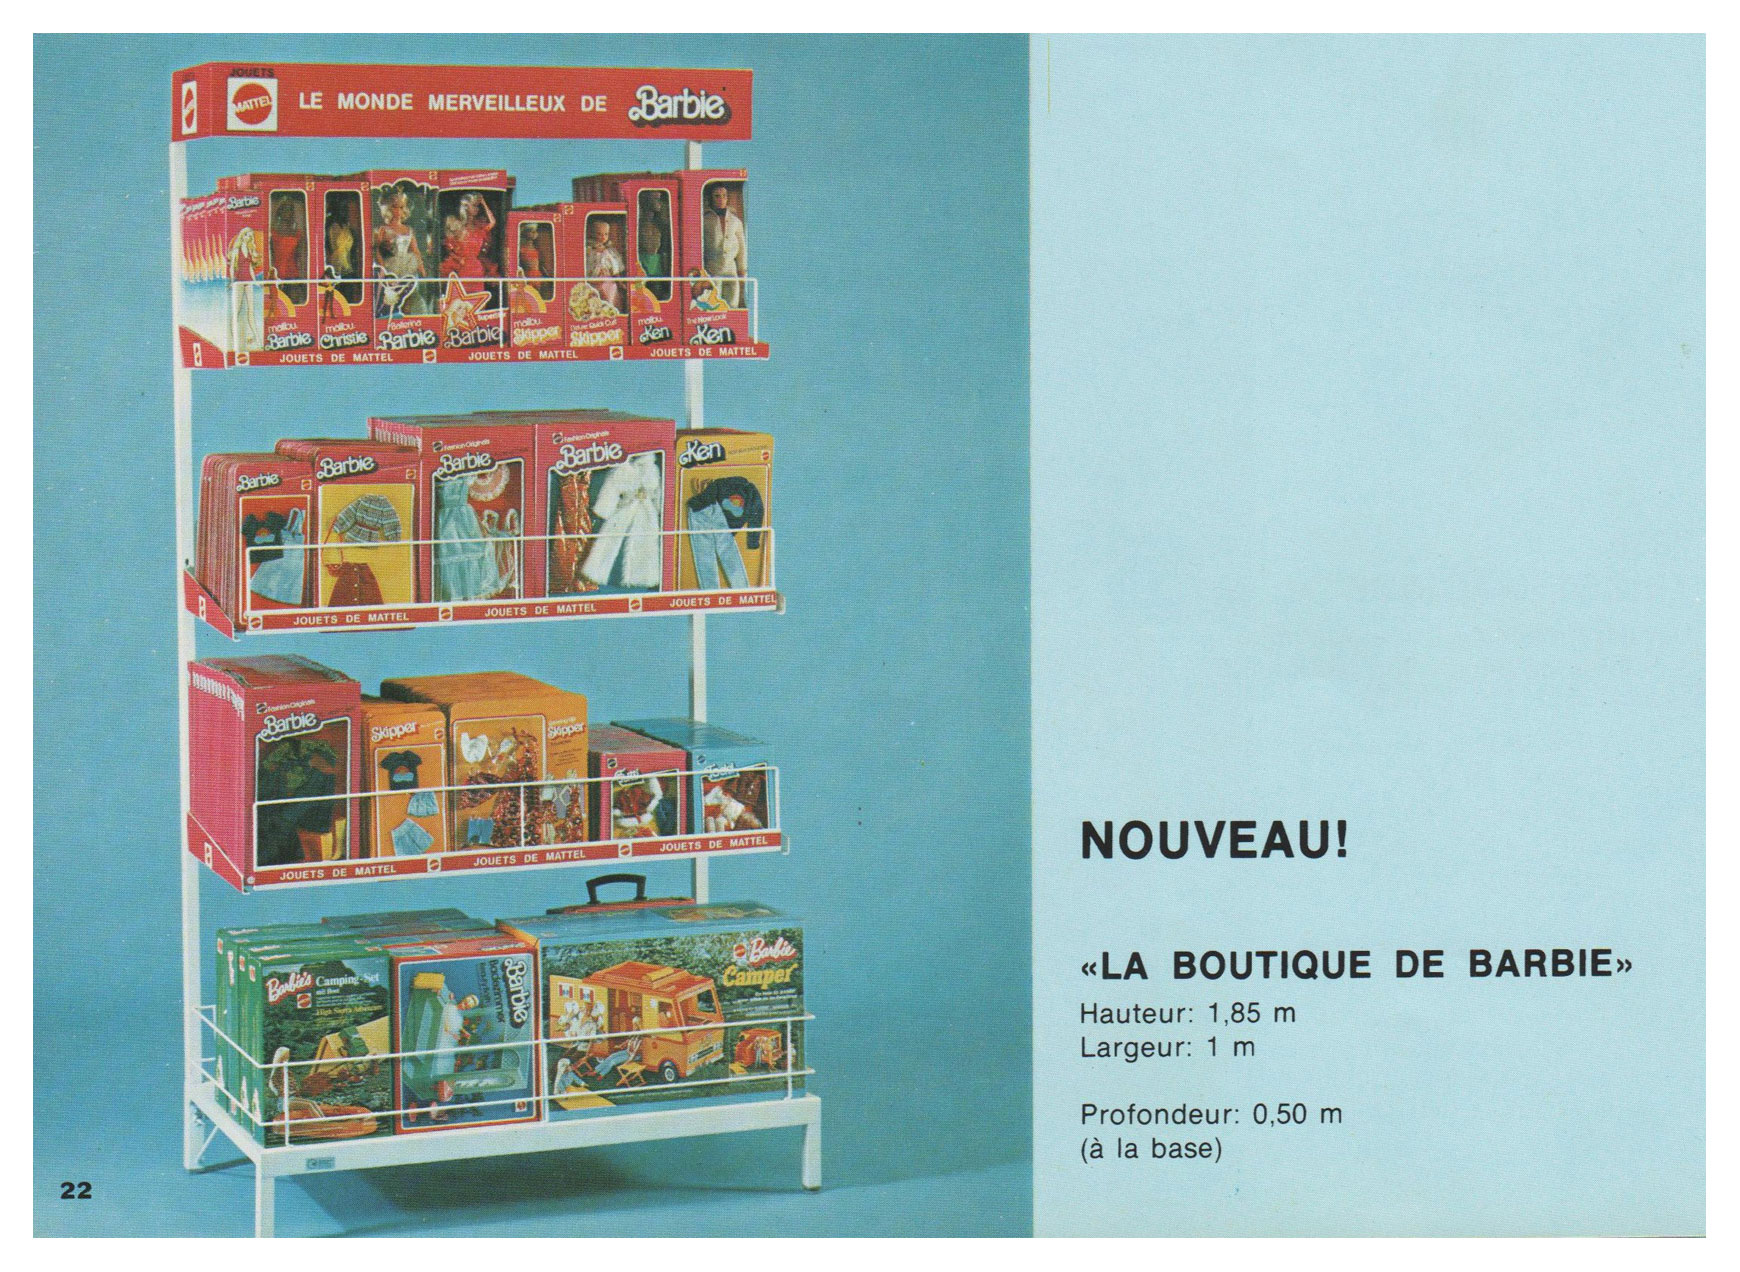 From 1977 French Mattel Toy catalogue